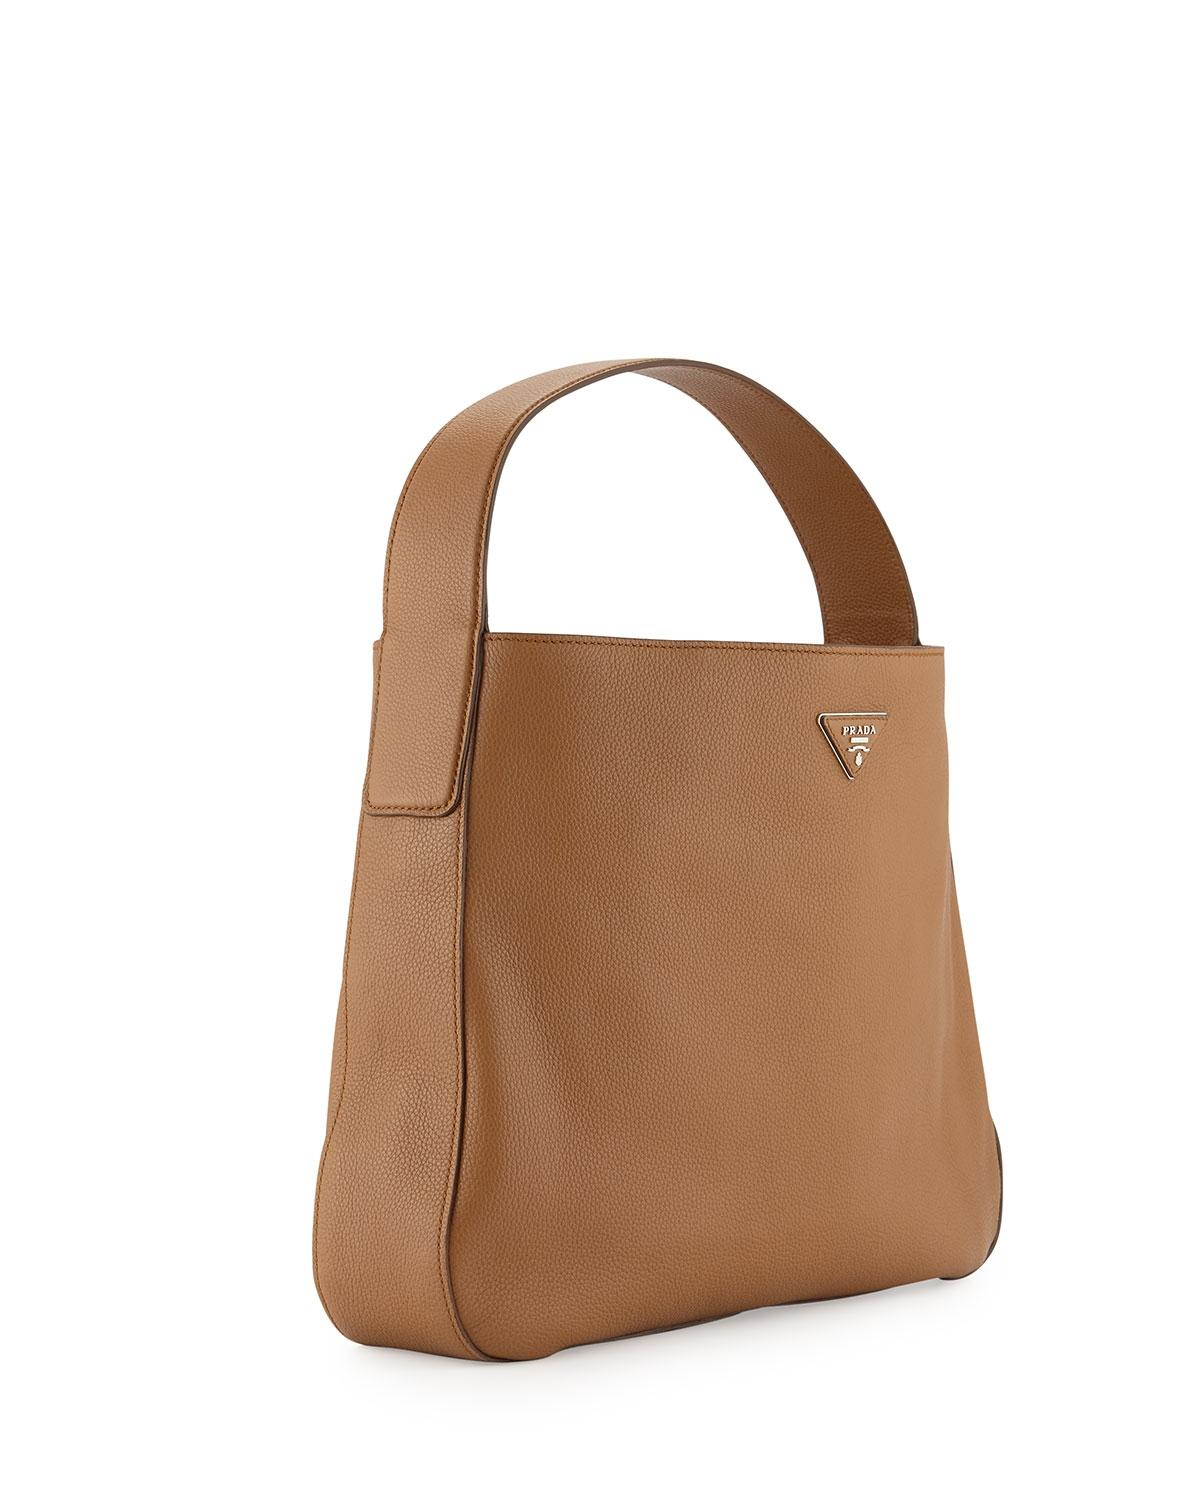 Prada Vitello Daino Sacca Leather 1bc028 Hobo Bag on Sale, 51% Off ...